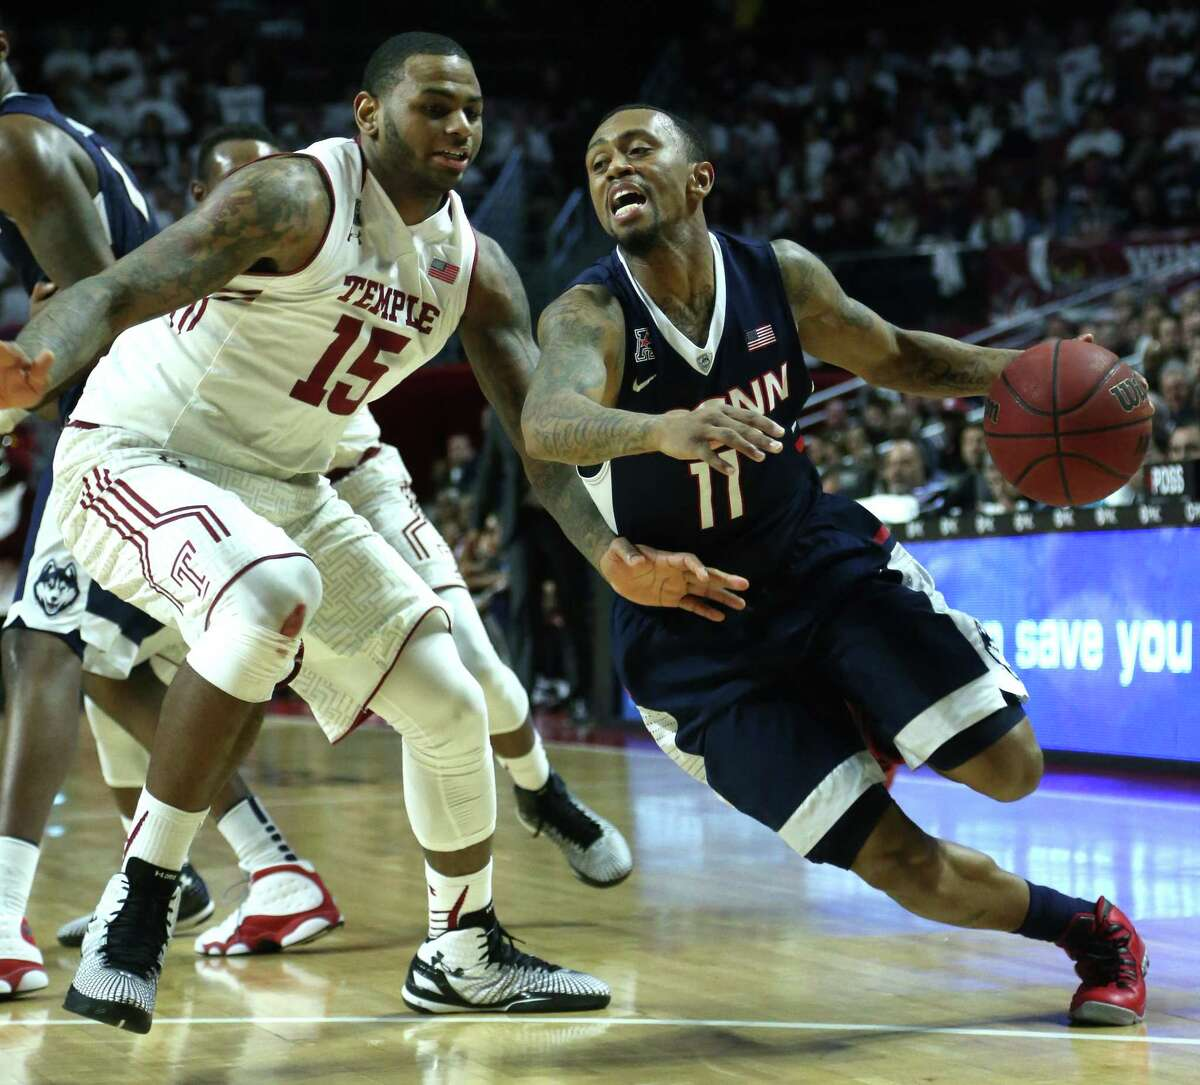 Ryan Boatright and the Huskies fell to Devin Coleman and Temple on Saturday afternoon in Philadelphia.